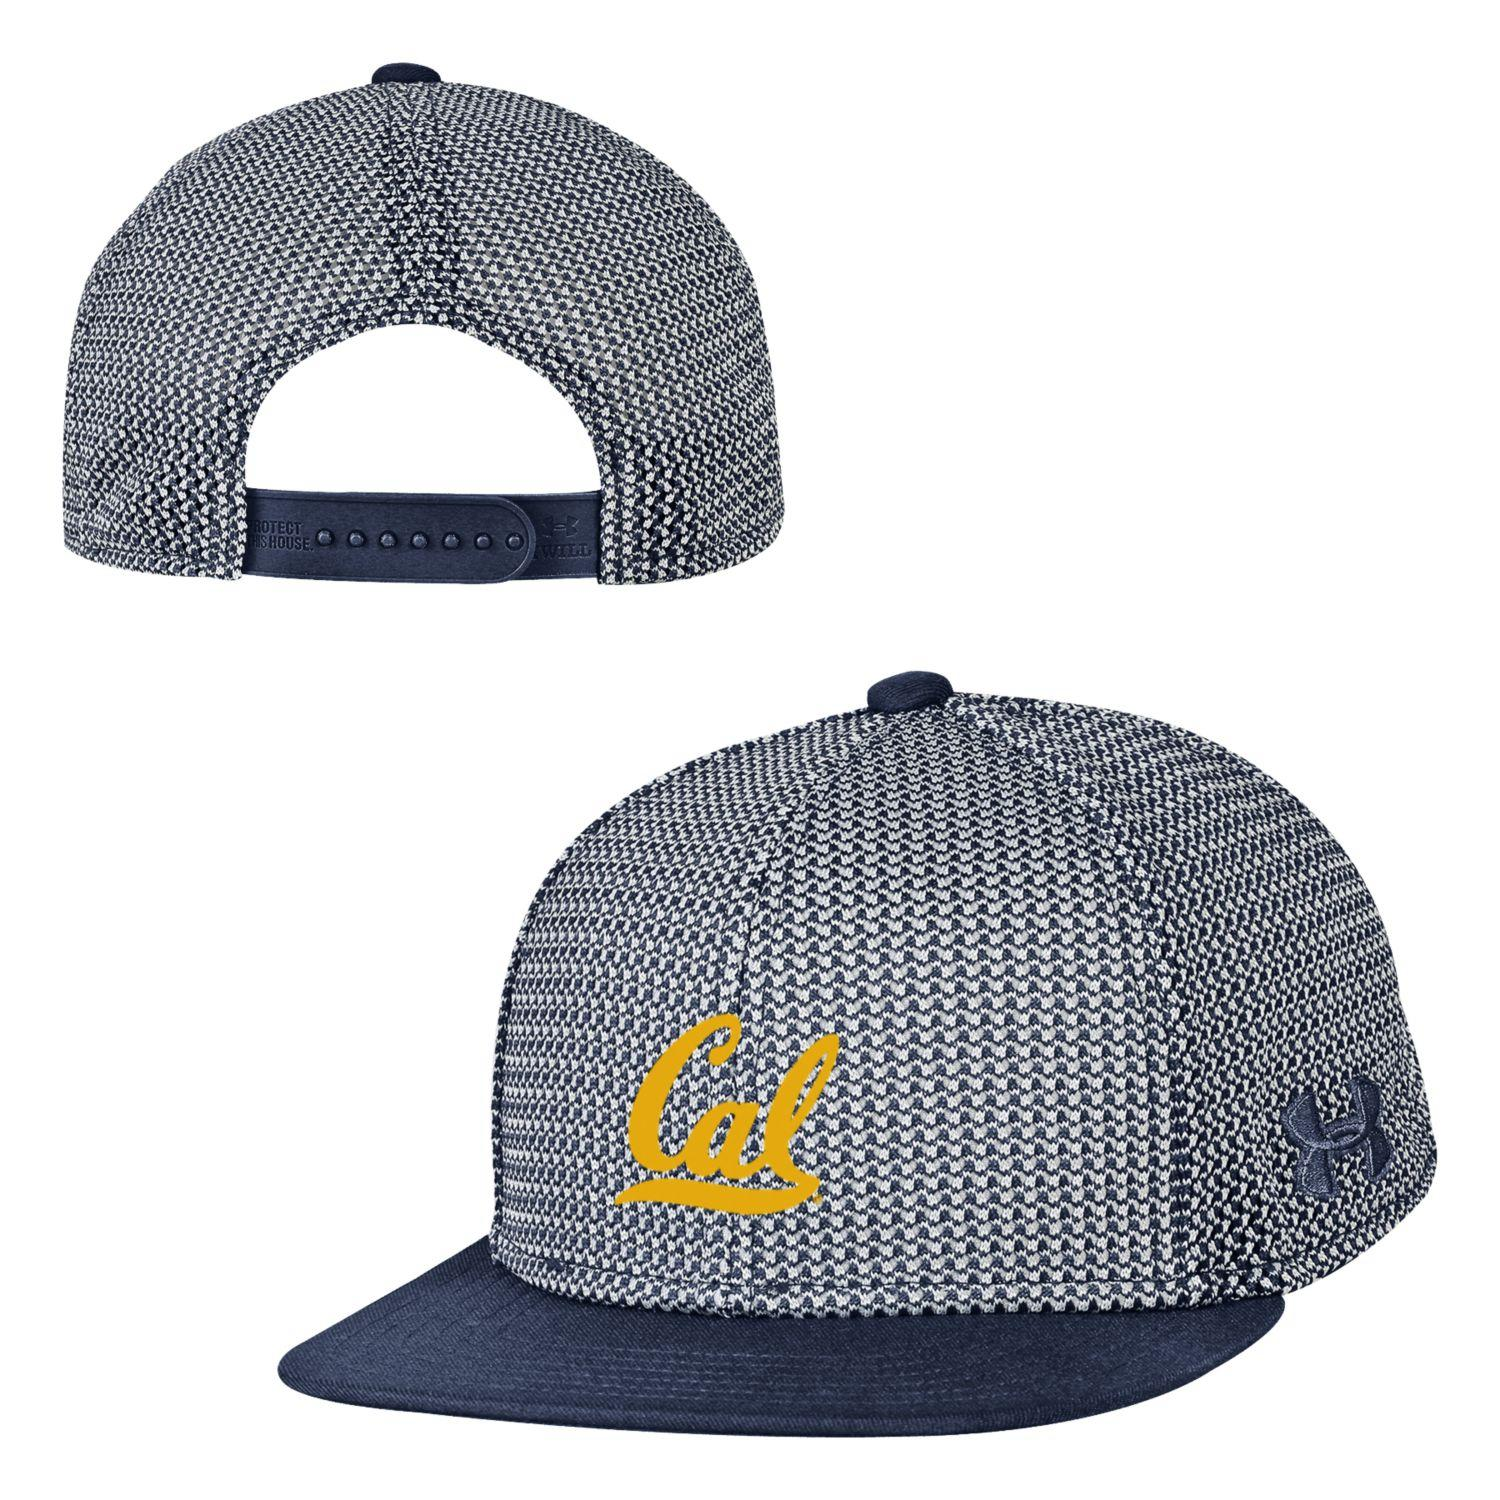 University of California Berkeley Under Armour Boys Mesh Knit Snapback